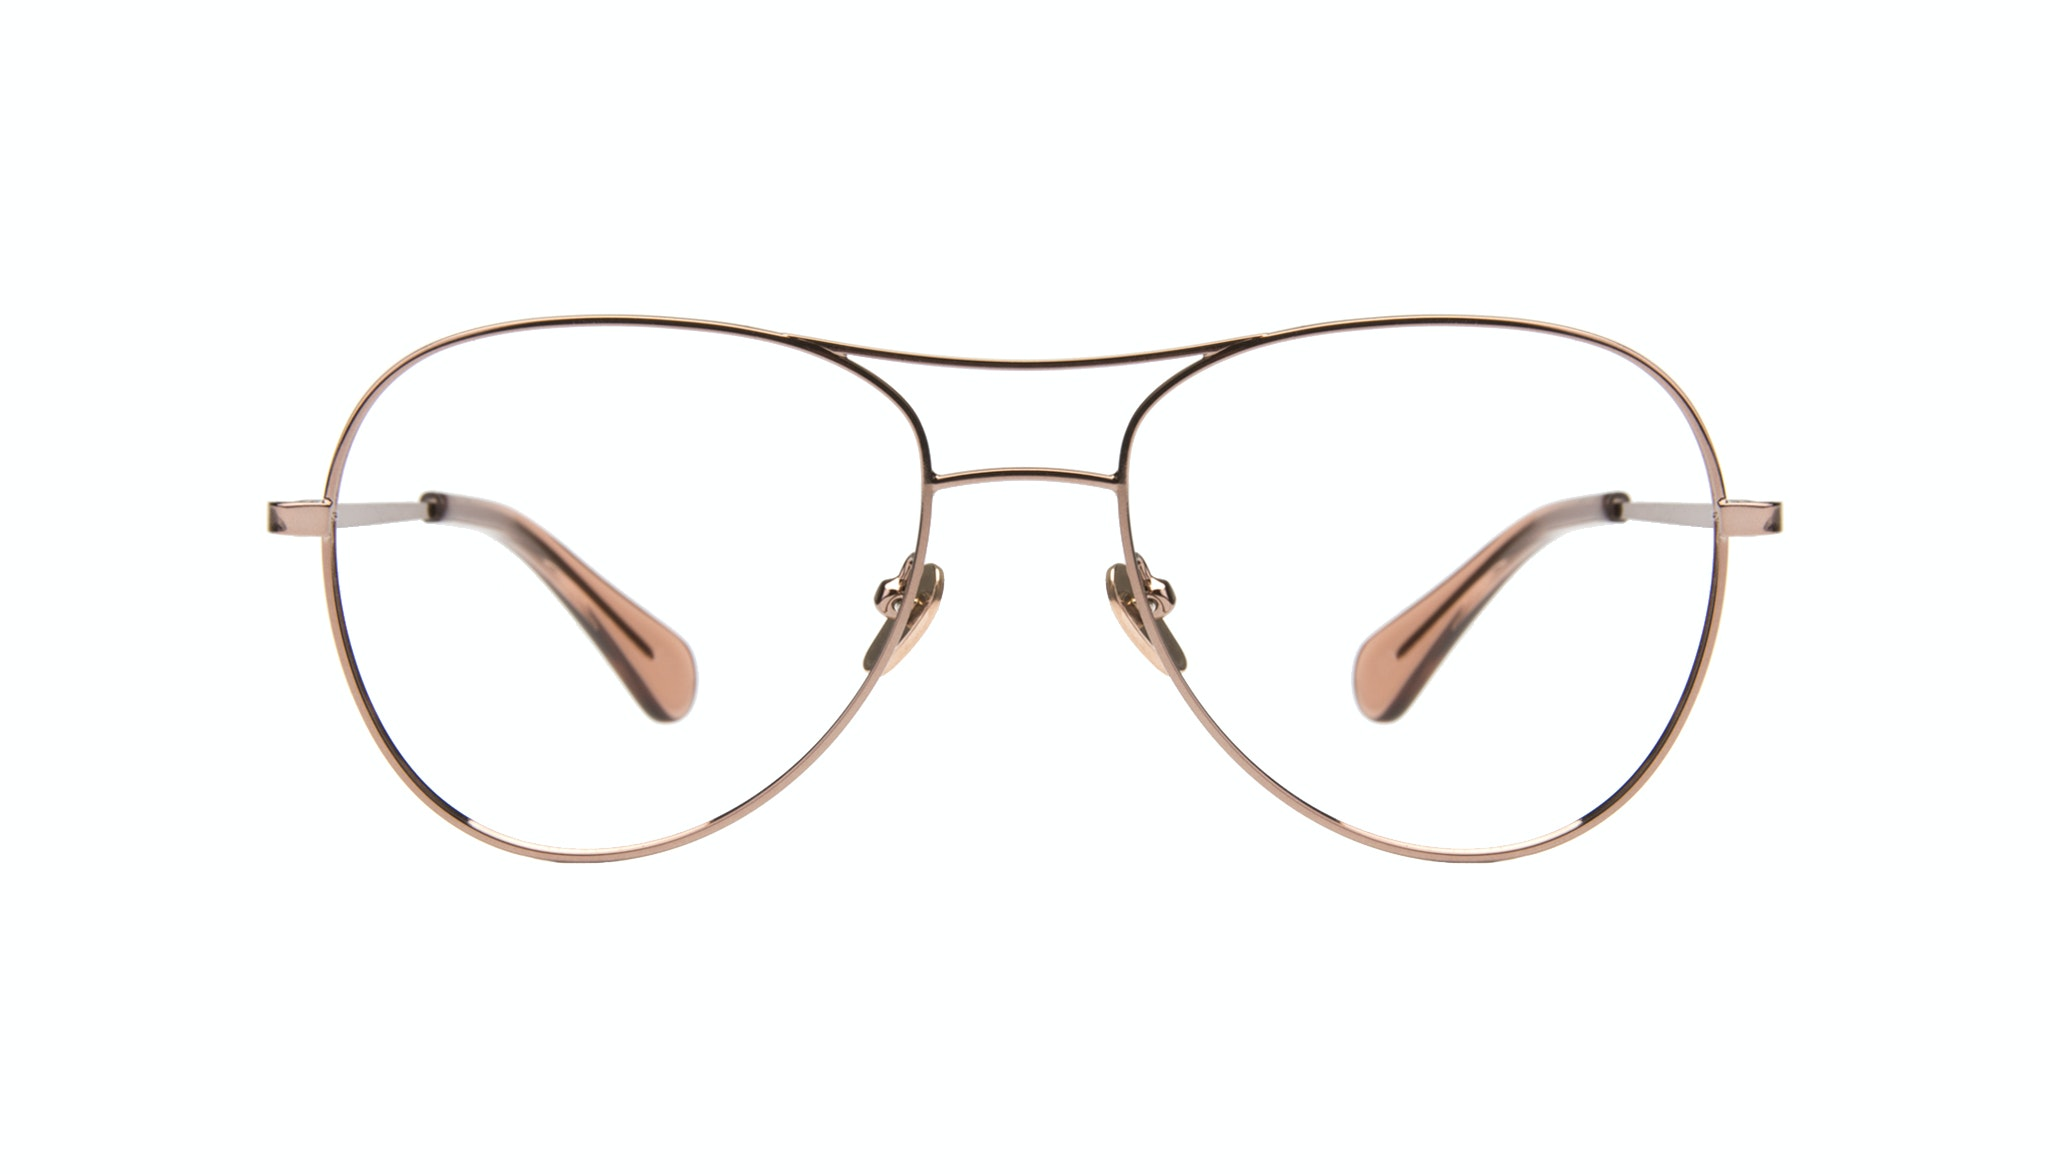 Affordable Fashion Glasses Aviator Eyeglasses Women Want Rose Gold